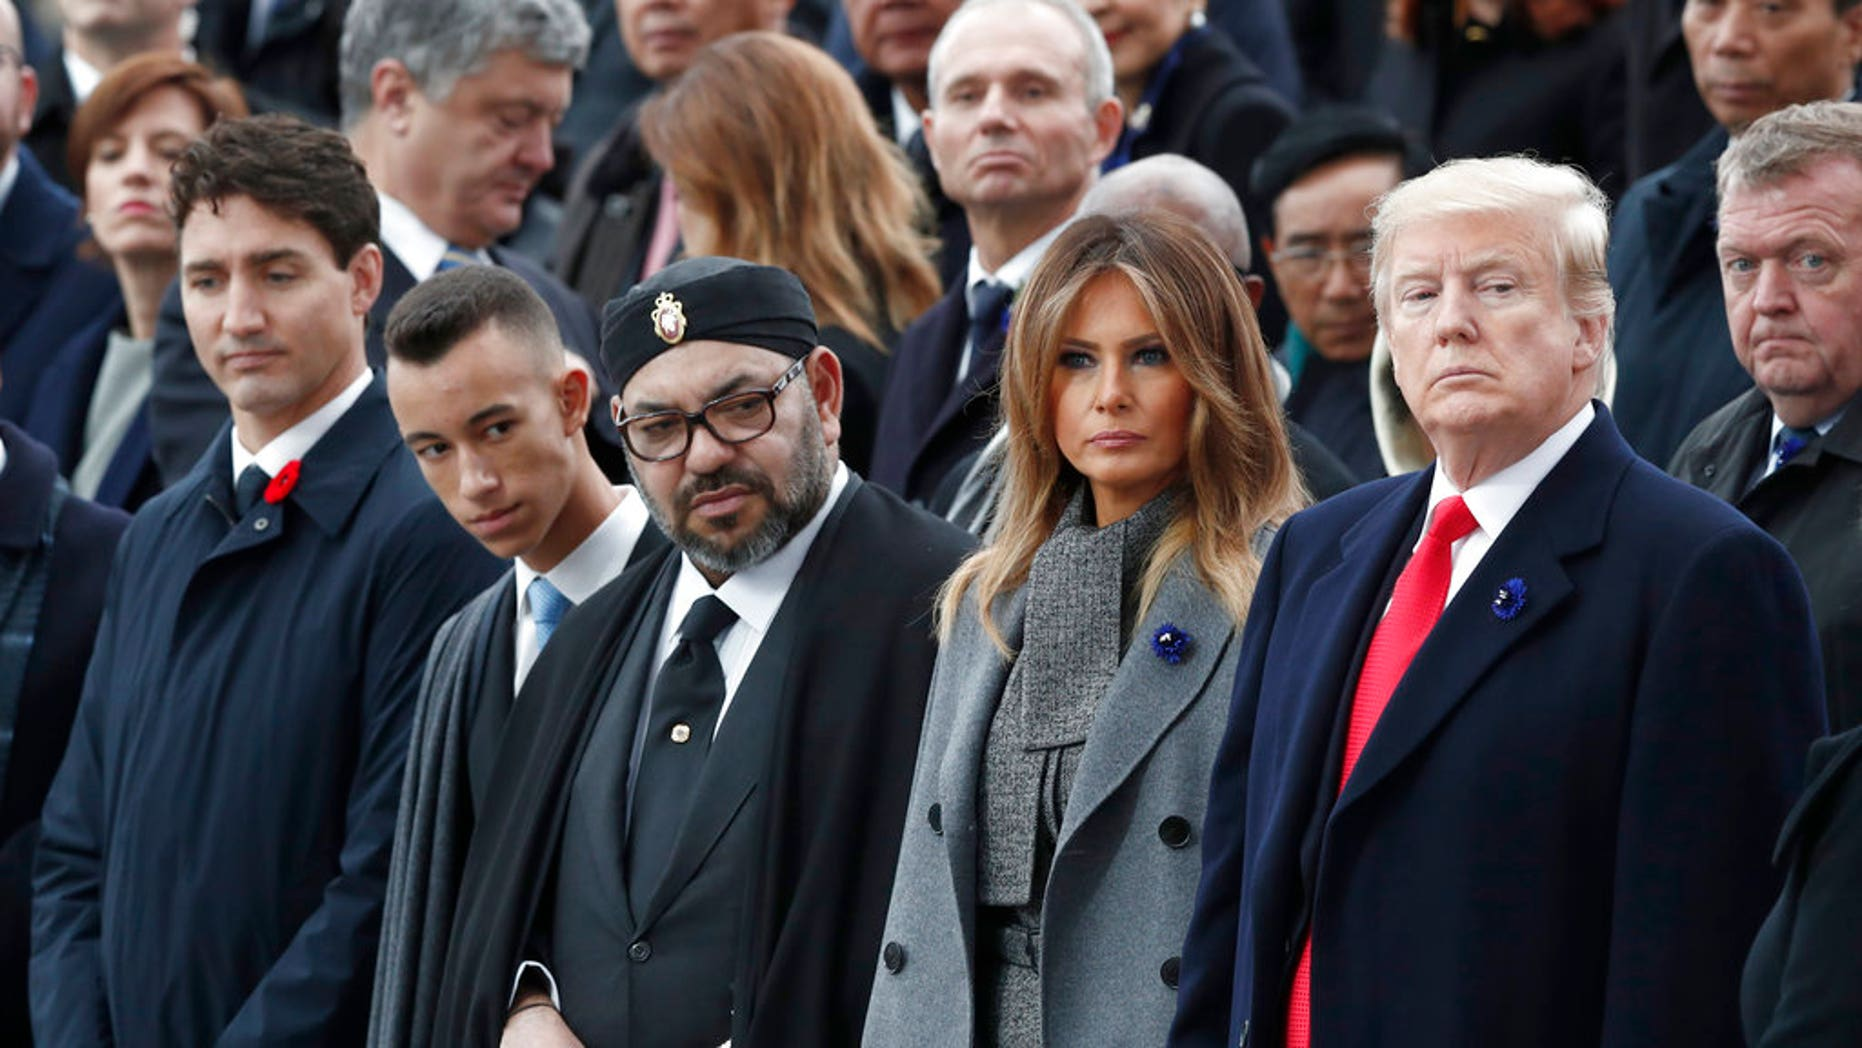 President Donald Trump, first lady Melania Trump, Morocco's King Mohammed VI, his son Crown Prince Moulay and Canadian Prime Minister Justin Trudeau, left, attend a commemoration ceremony for Armistice Day at the Arc de Triomphe in Paris. (AP)